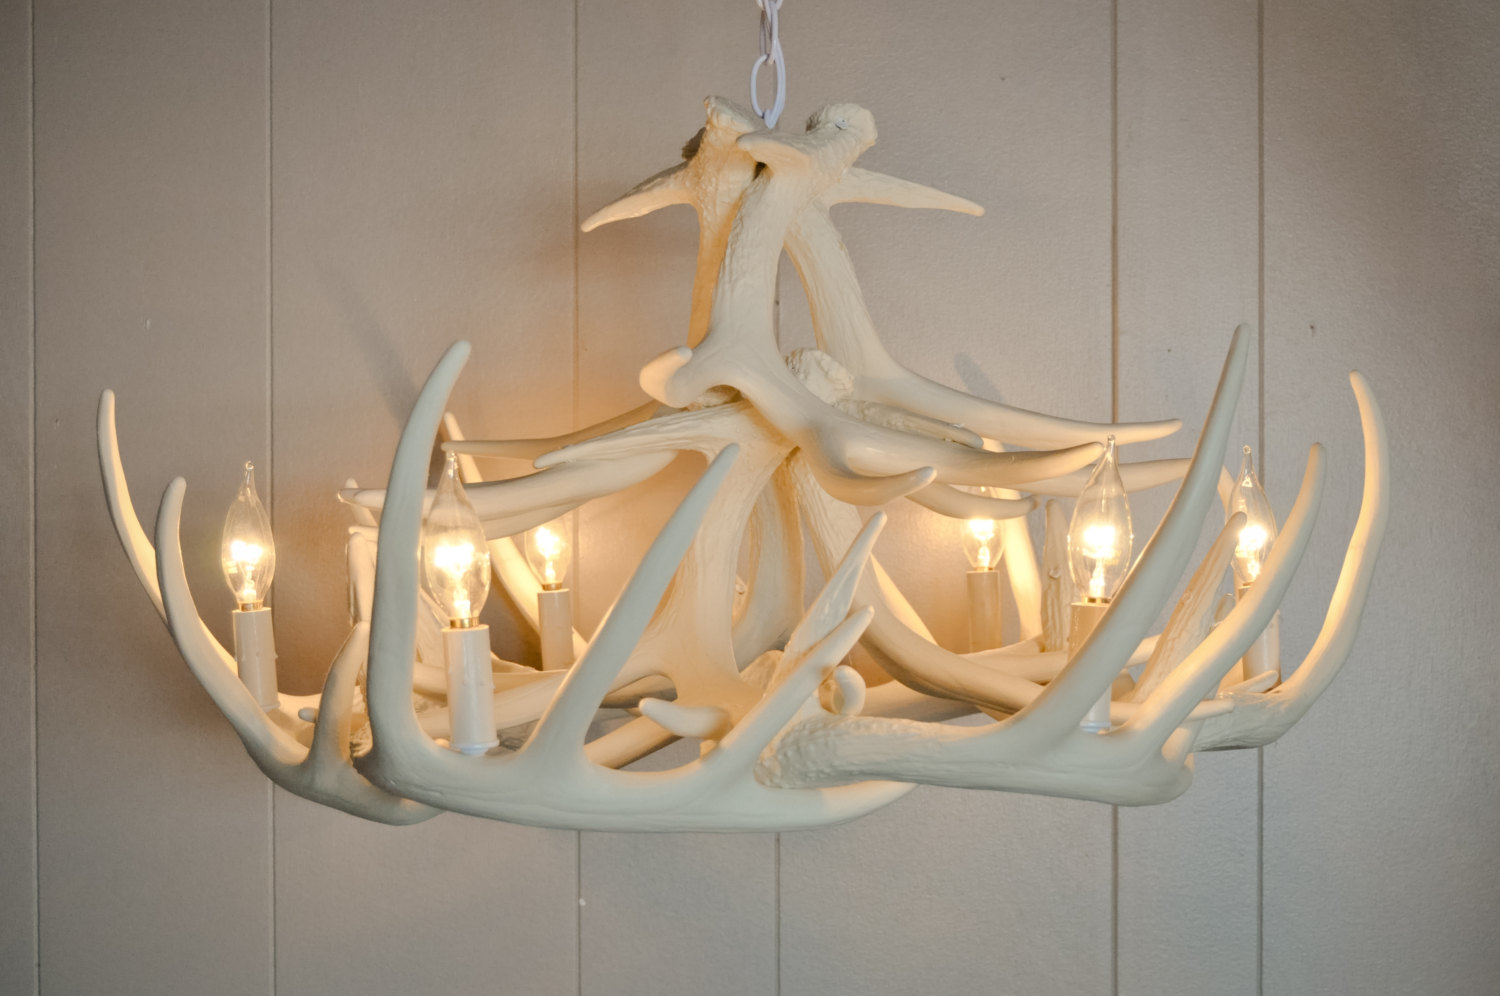 White antler chandelier displaying unique and rustic details in stunning white antler chandelier with a lot of bulbs decorated for warm and romantic home ideas aloadofball Gallery